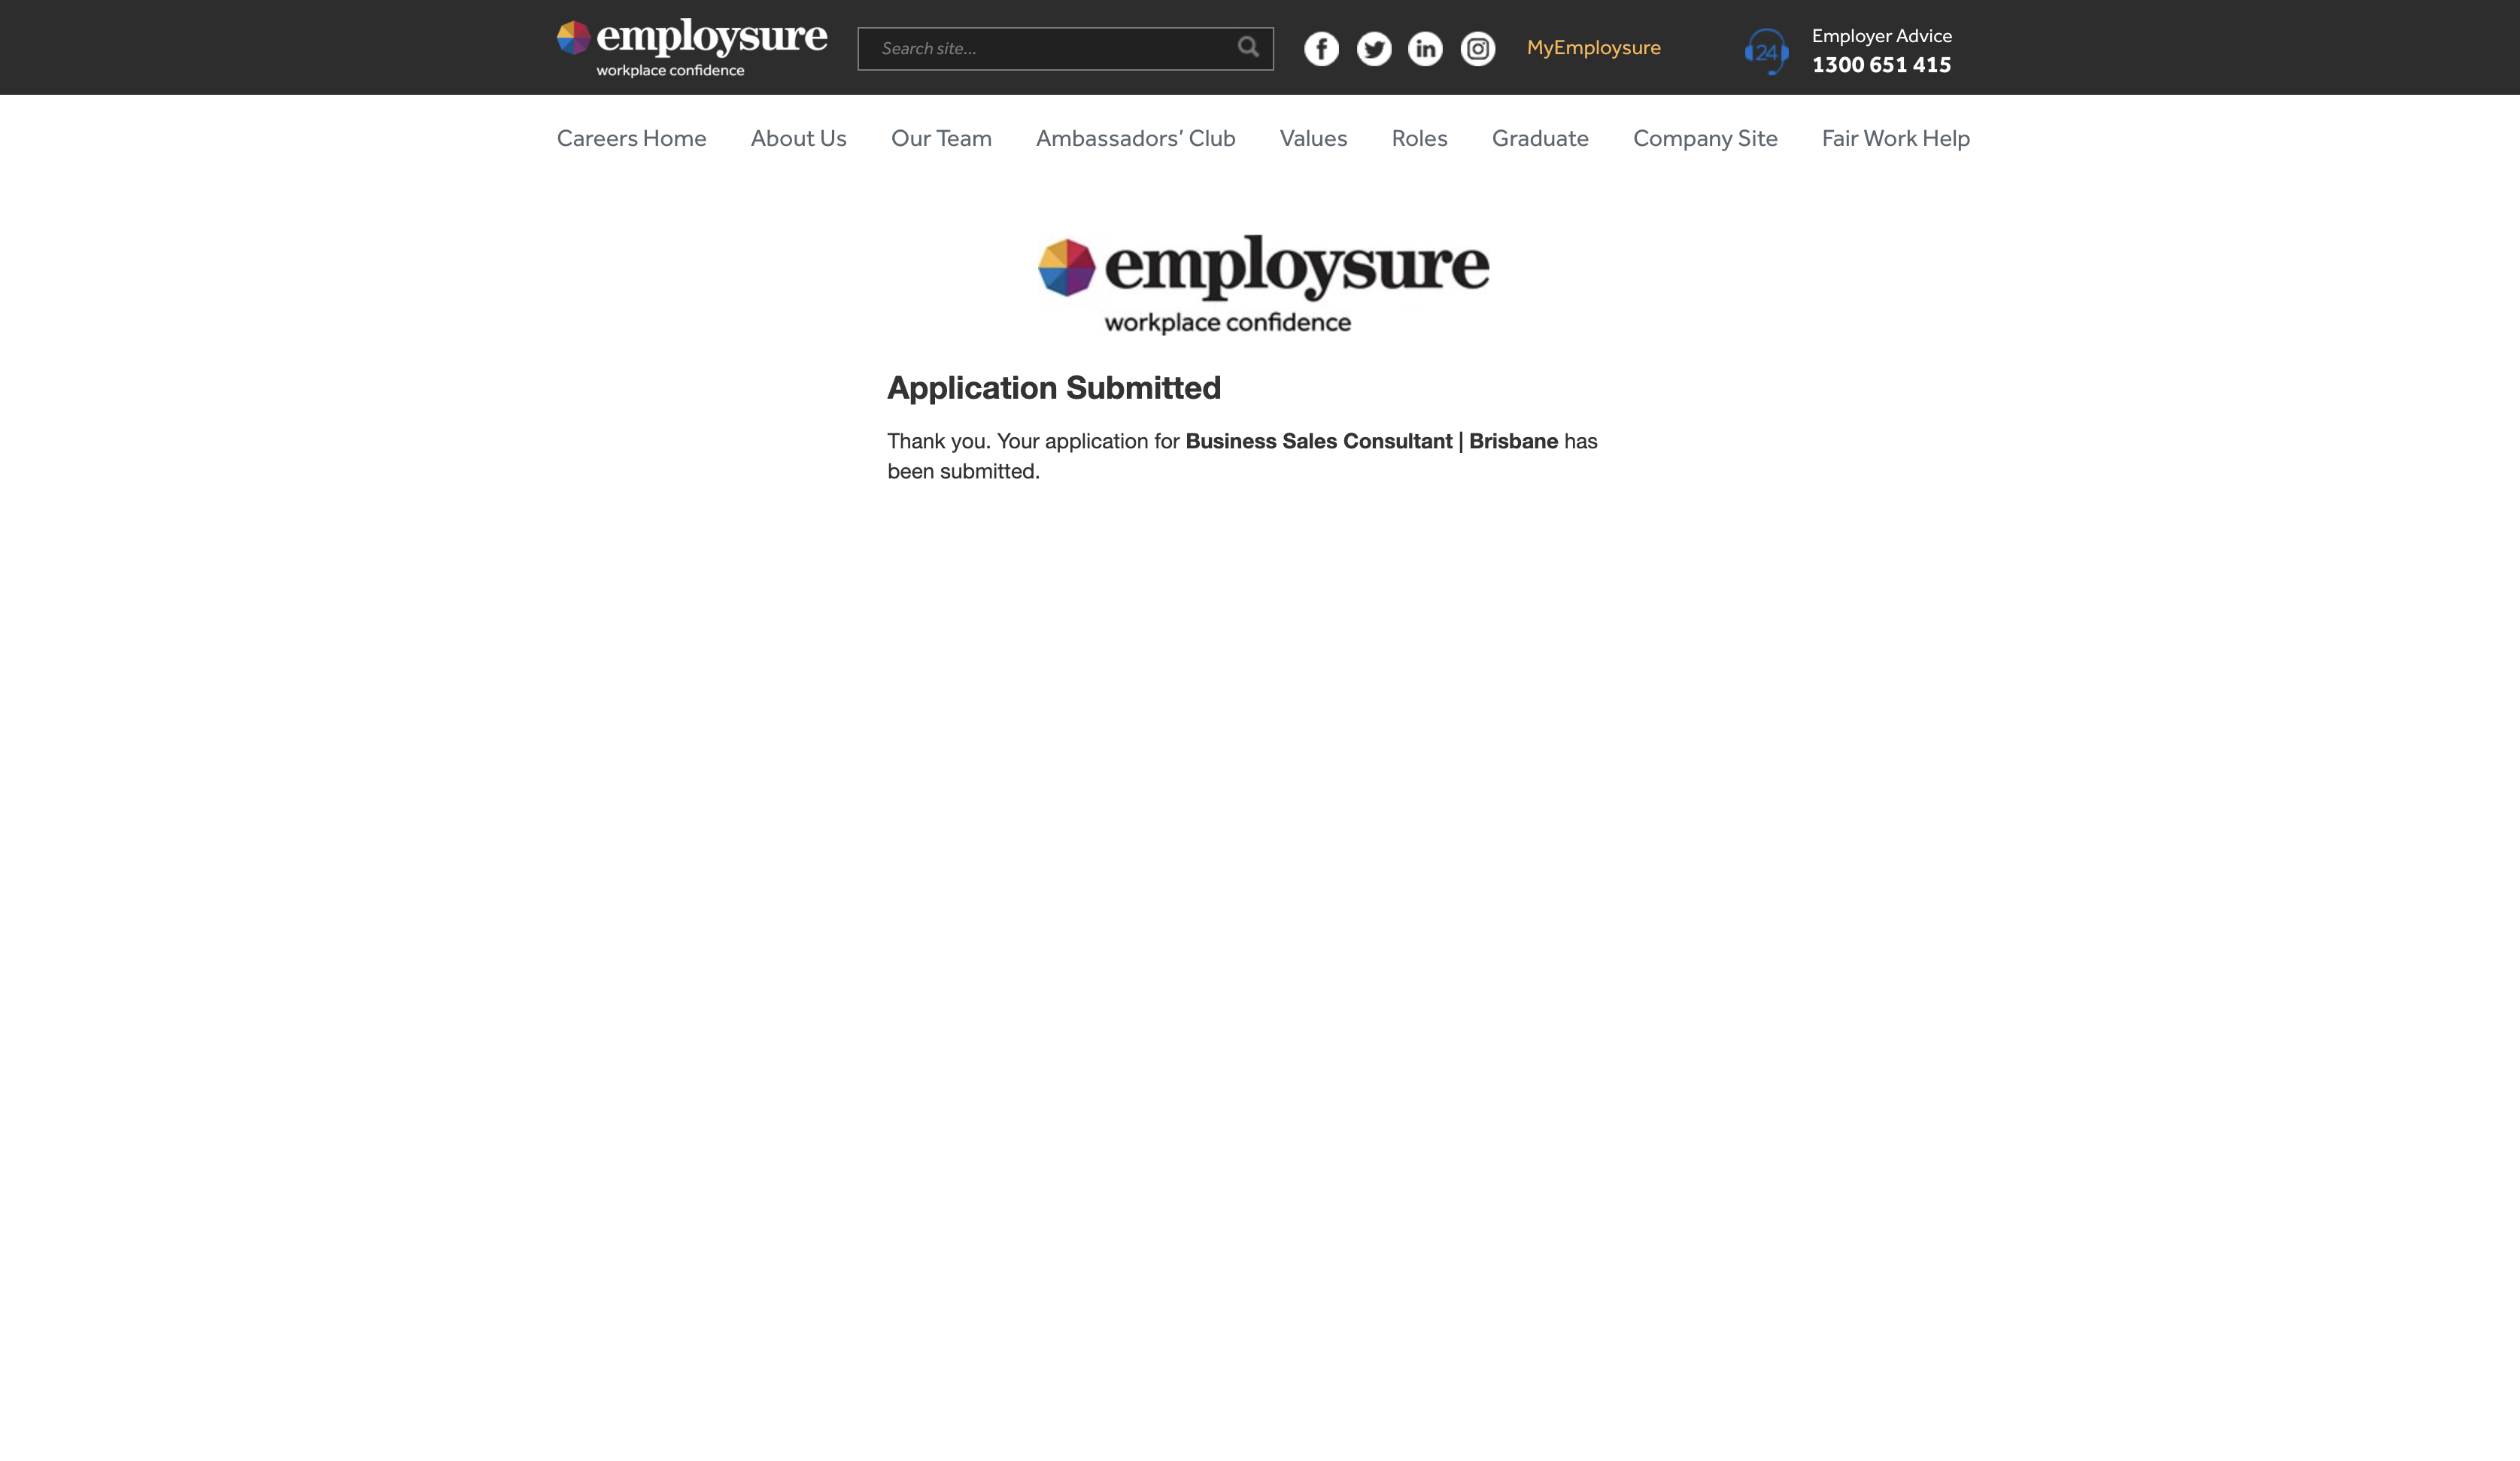 employsure job application step 6